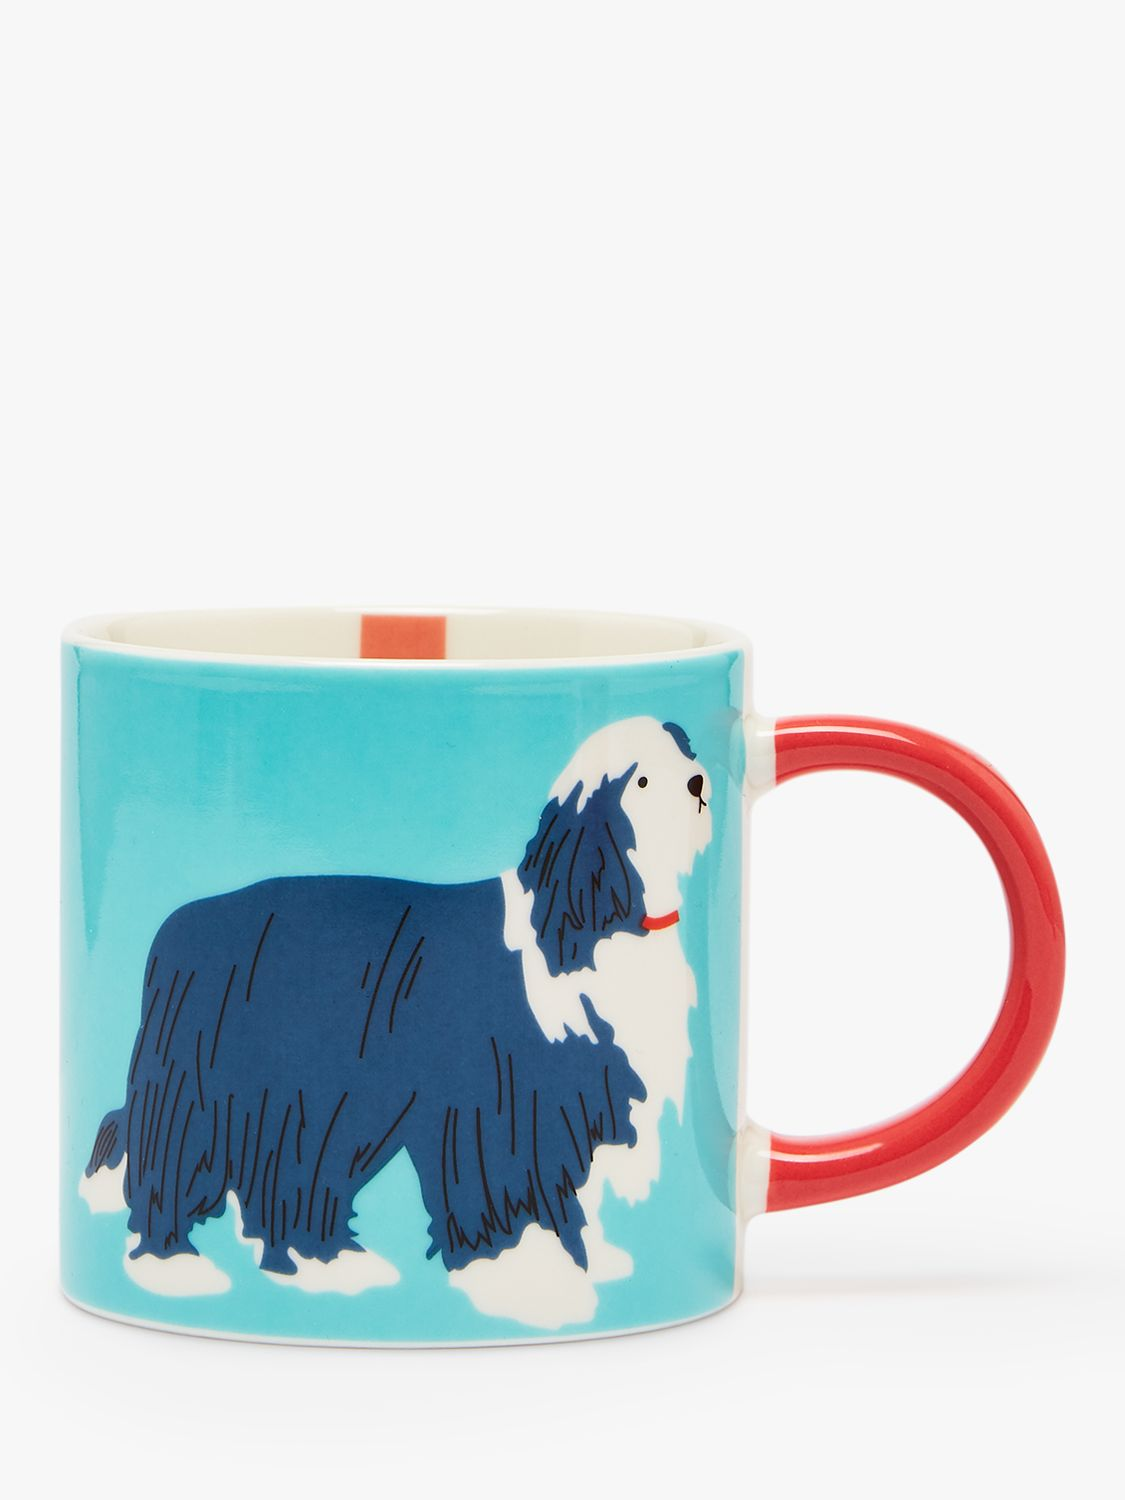 Joules Joules Paws Off Dog Mug, 300ml, Blue/Multi